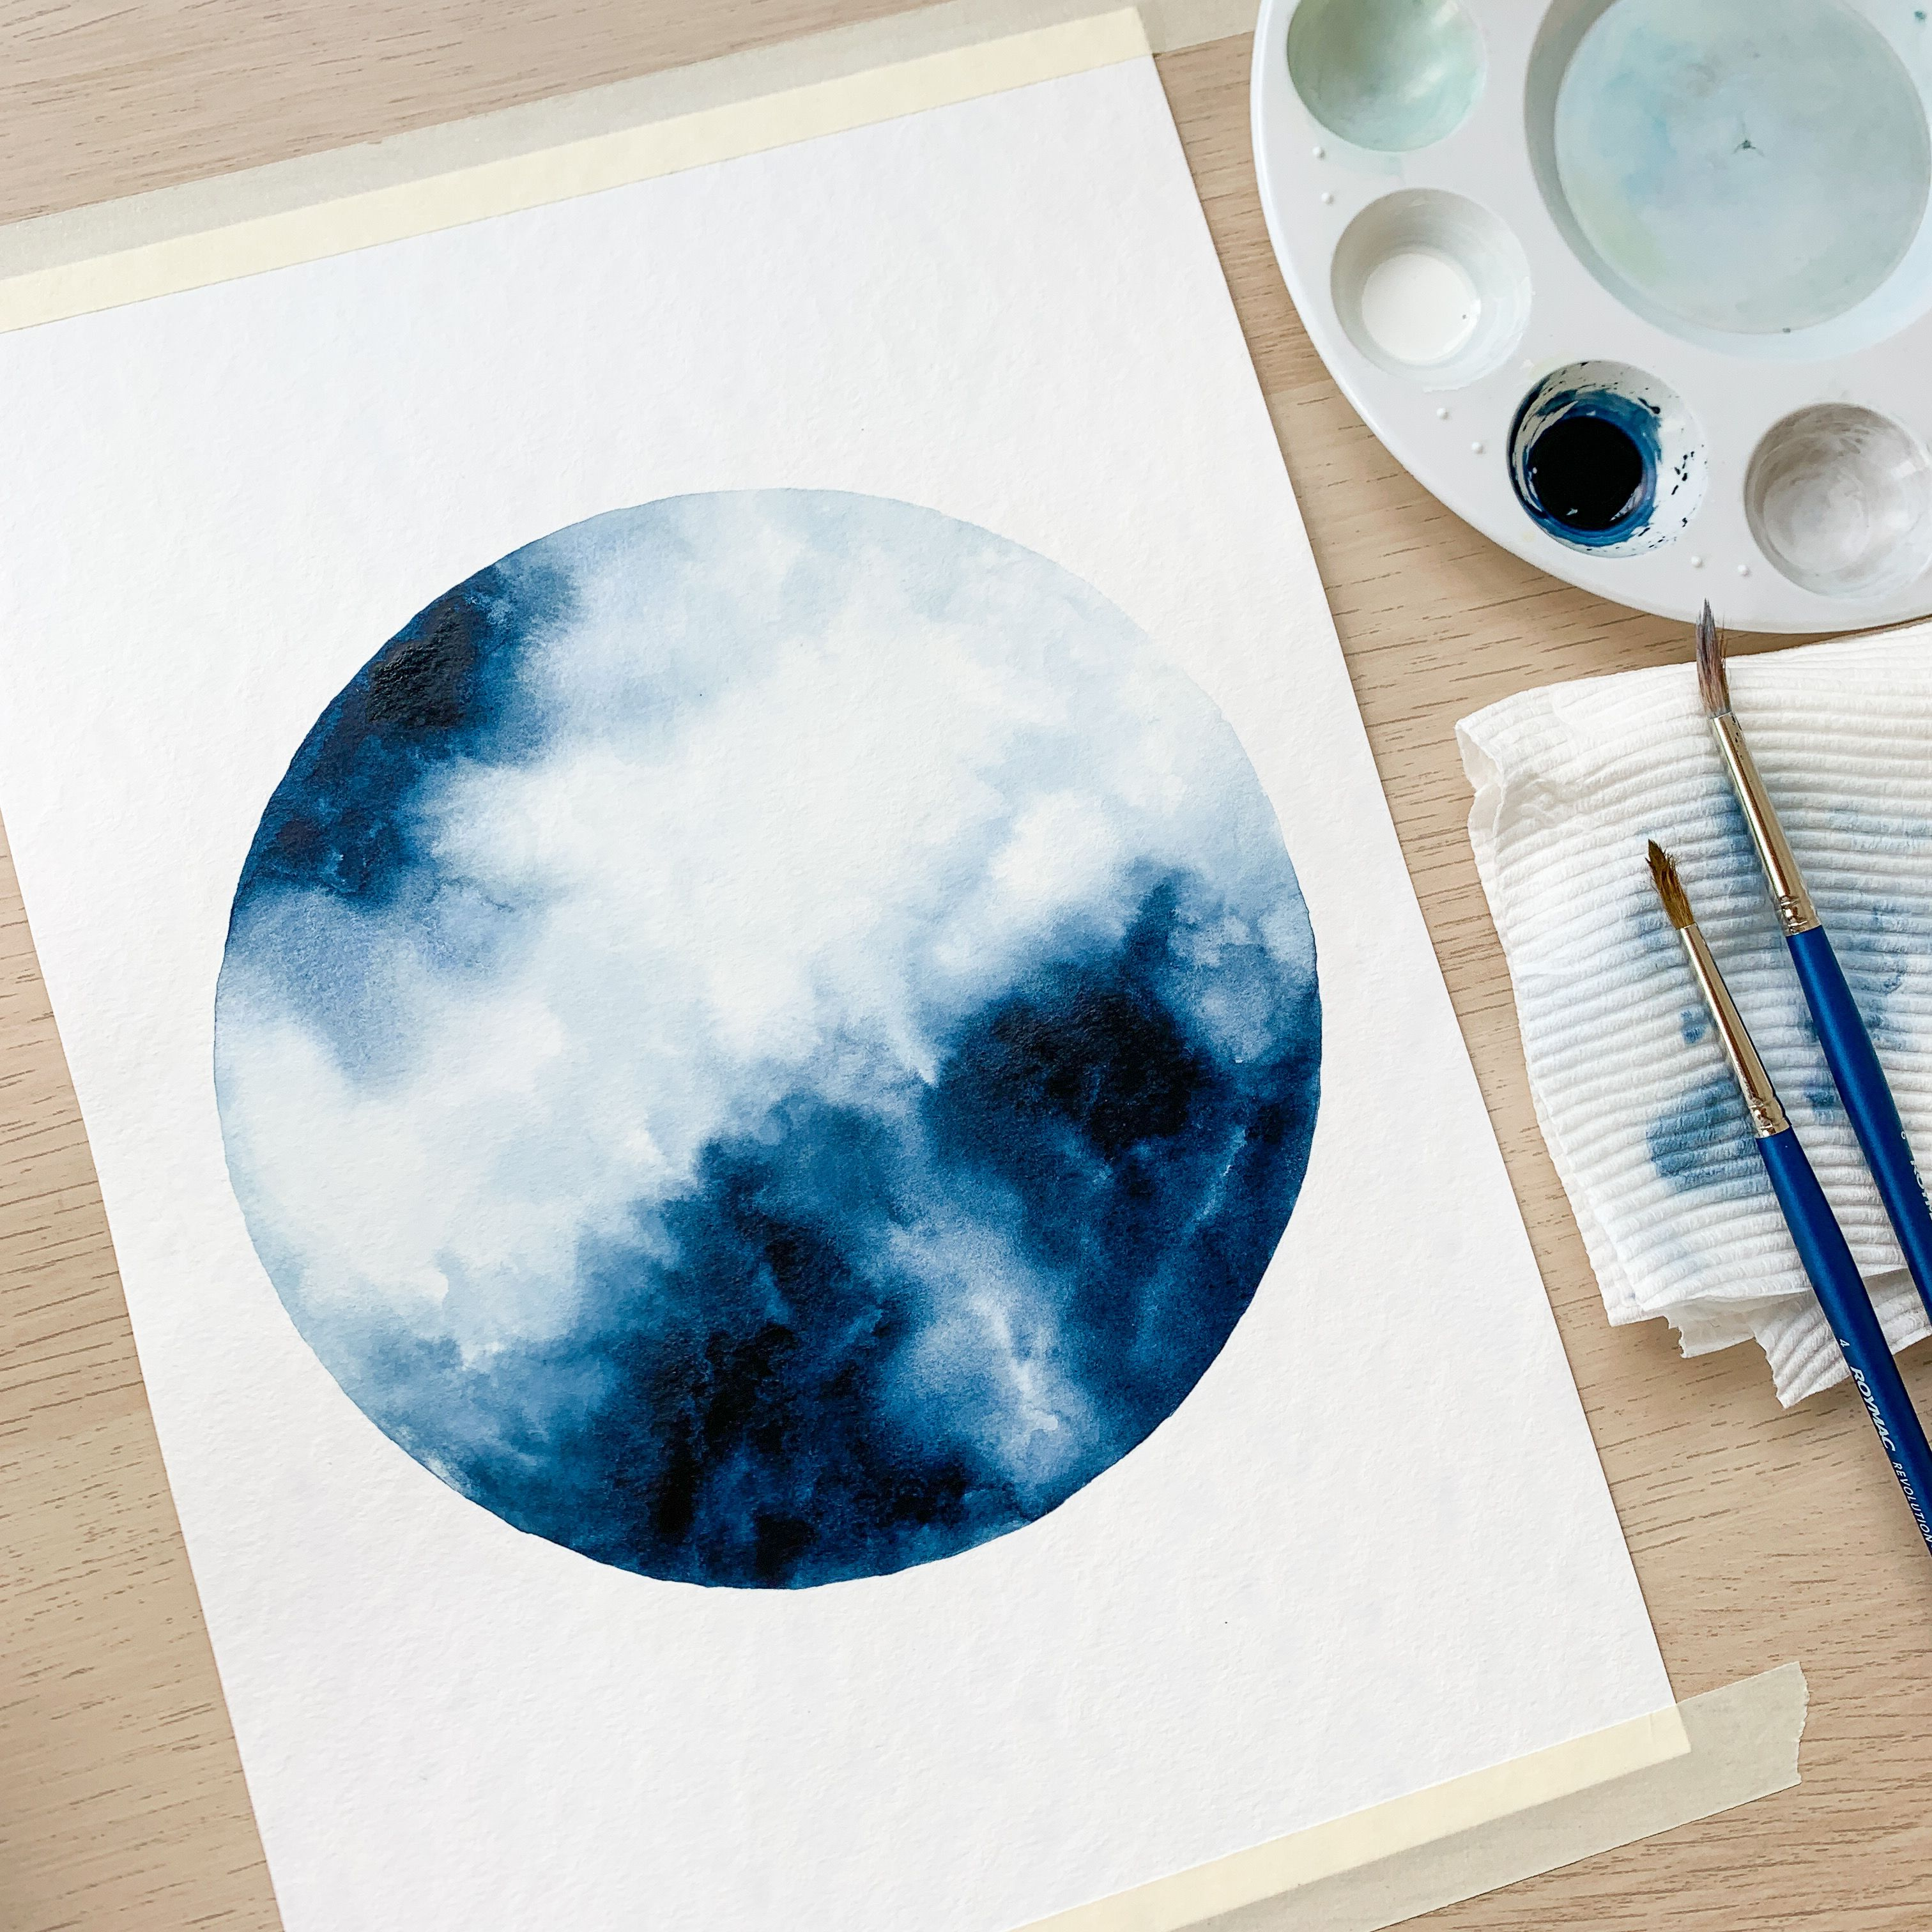 Pin By Hilal Ulcay On Illustrative Watercolor Moon Watercolor Galaxy Painting